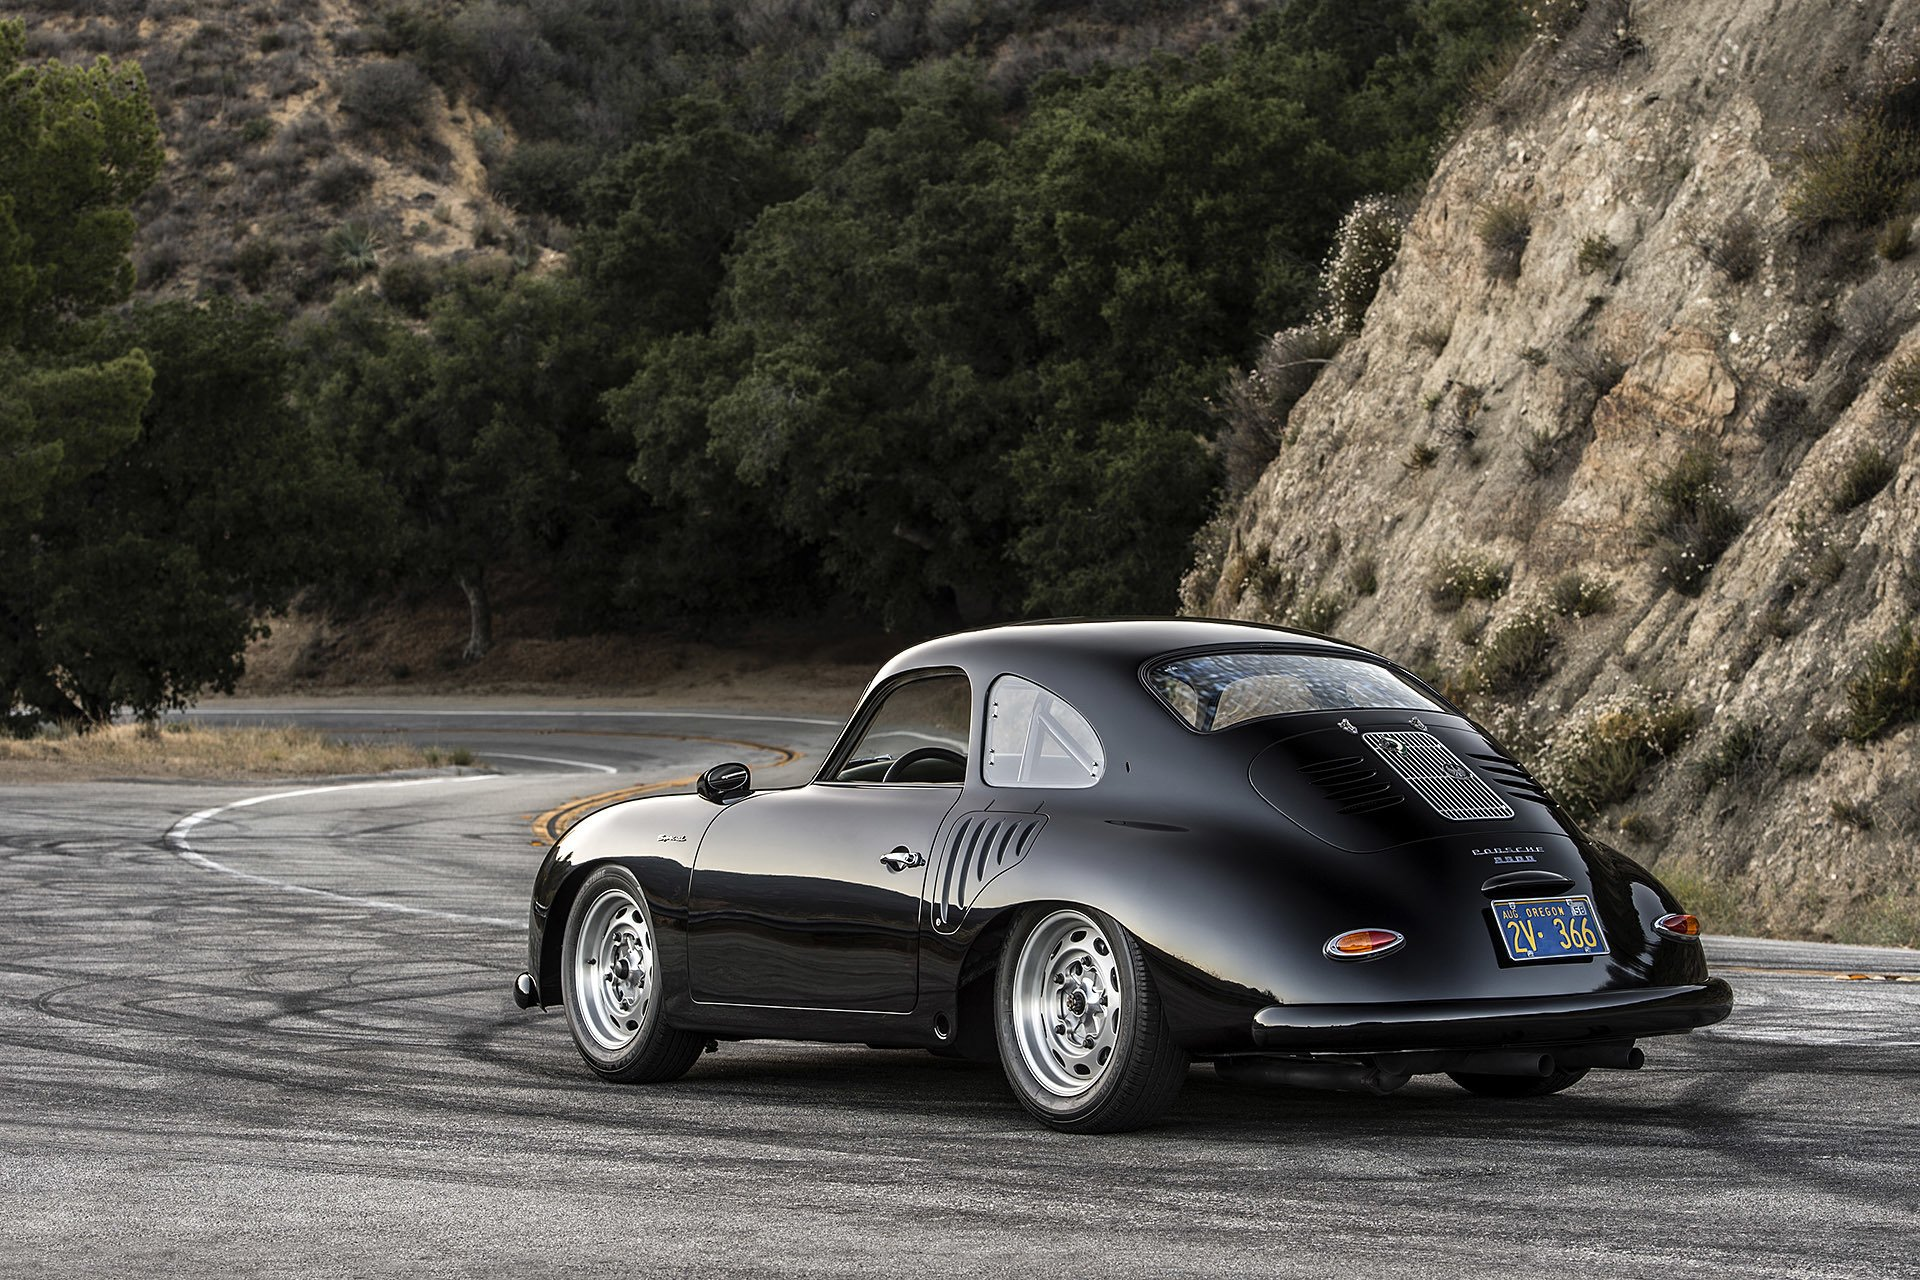 1959 Porsche 356 Emory Cars Coupe Modified Wallpaper HD Wallpapers Download free images and photos [musssic.tk]